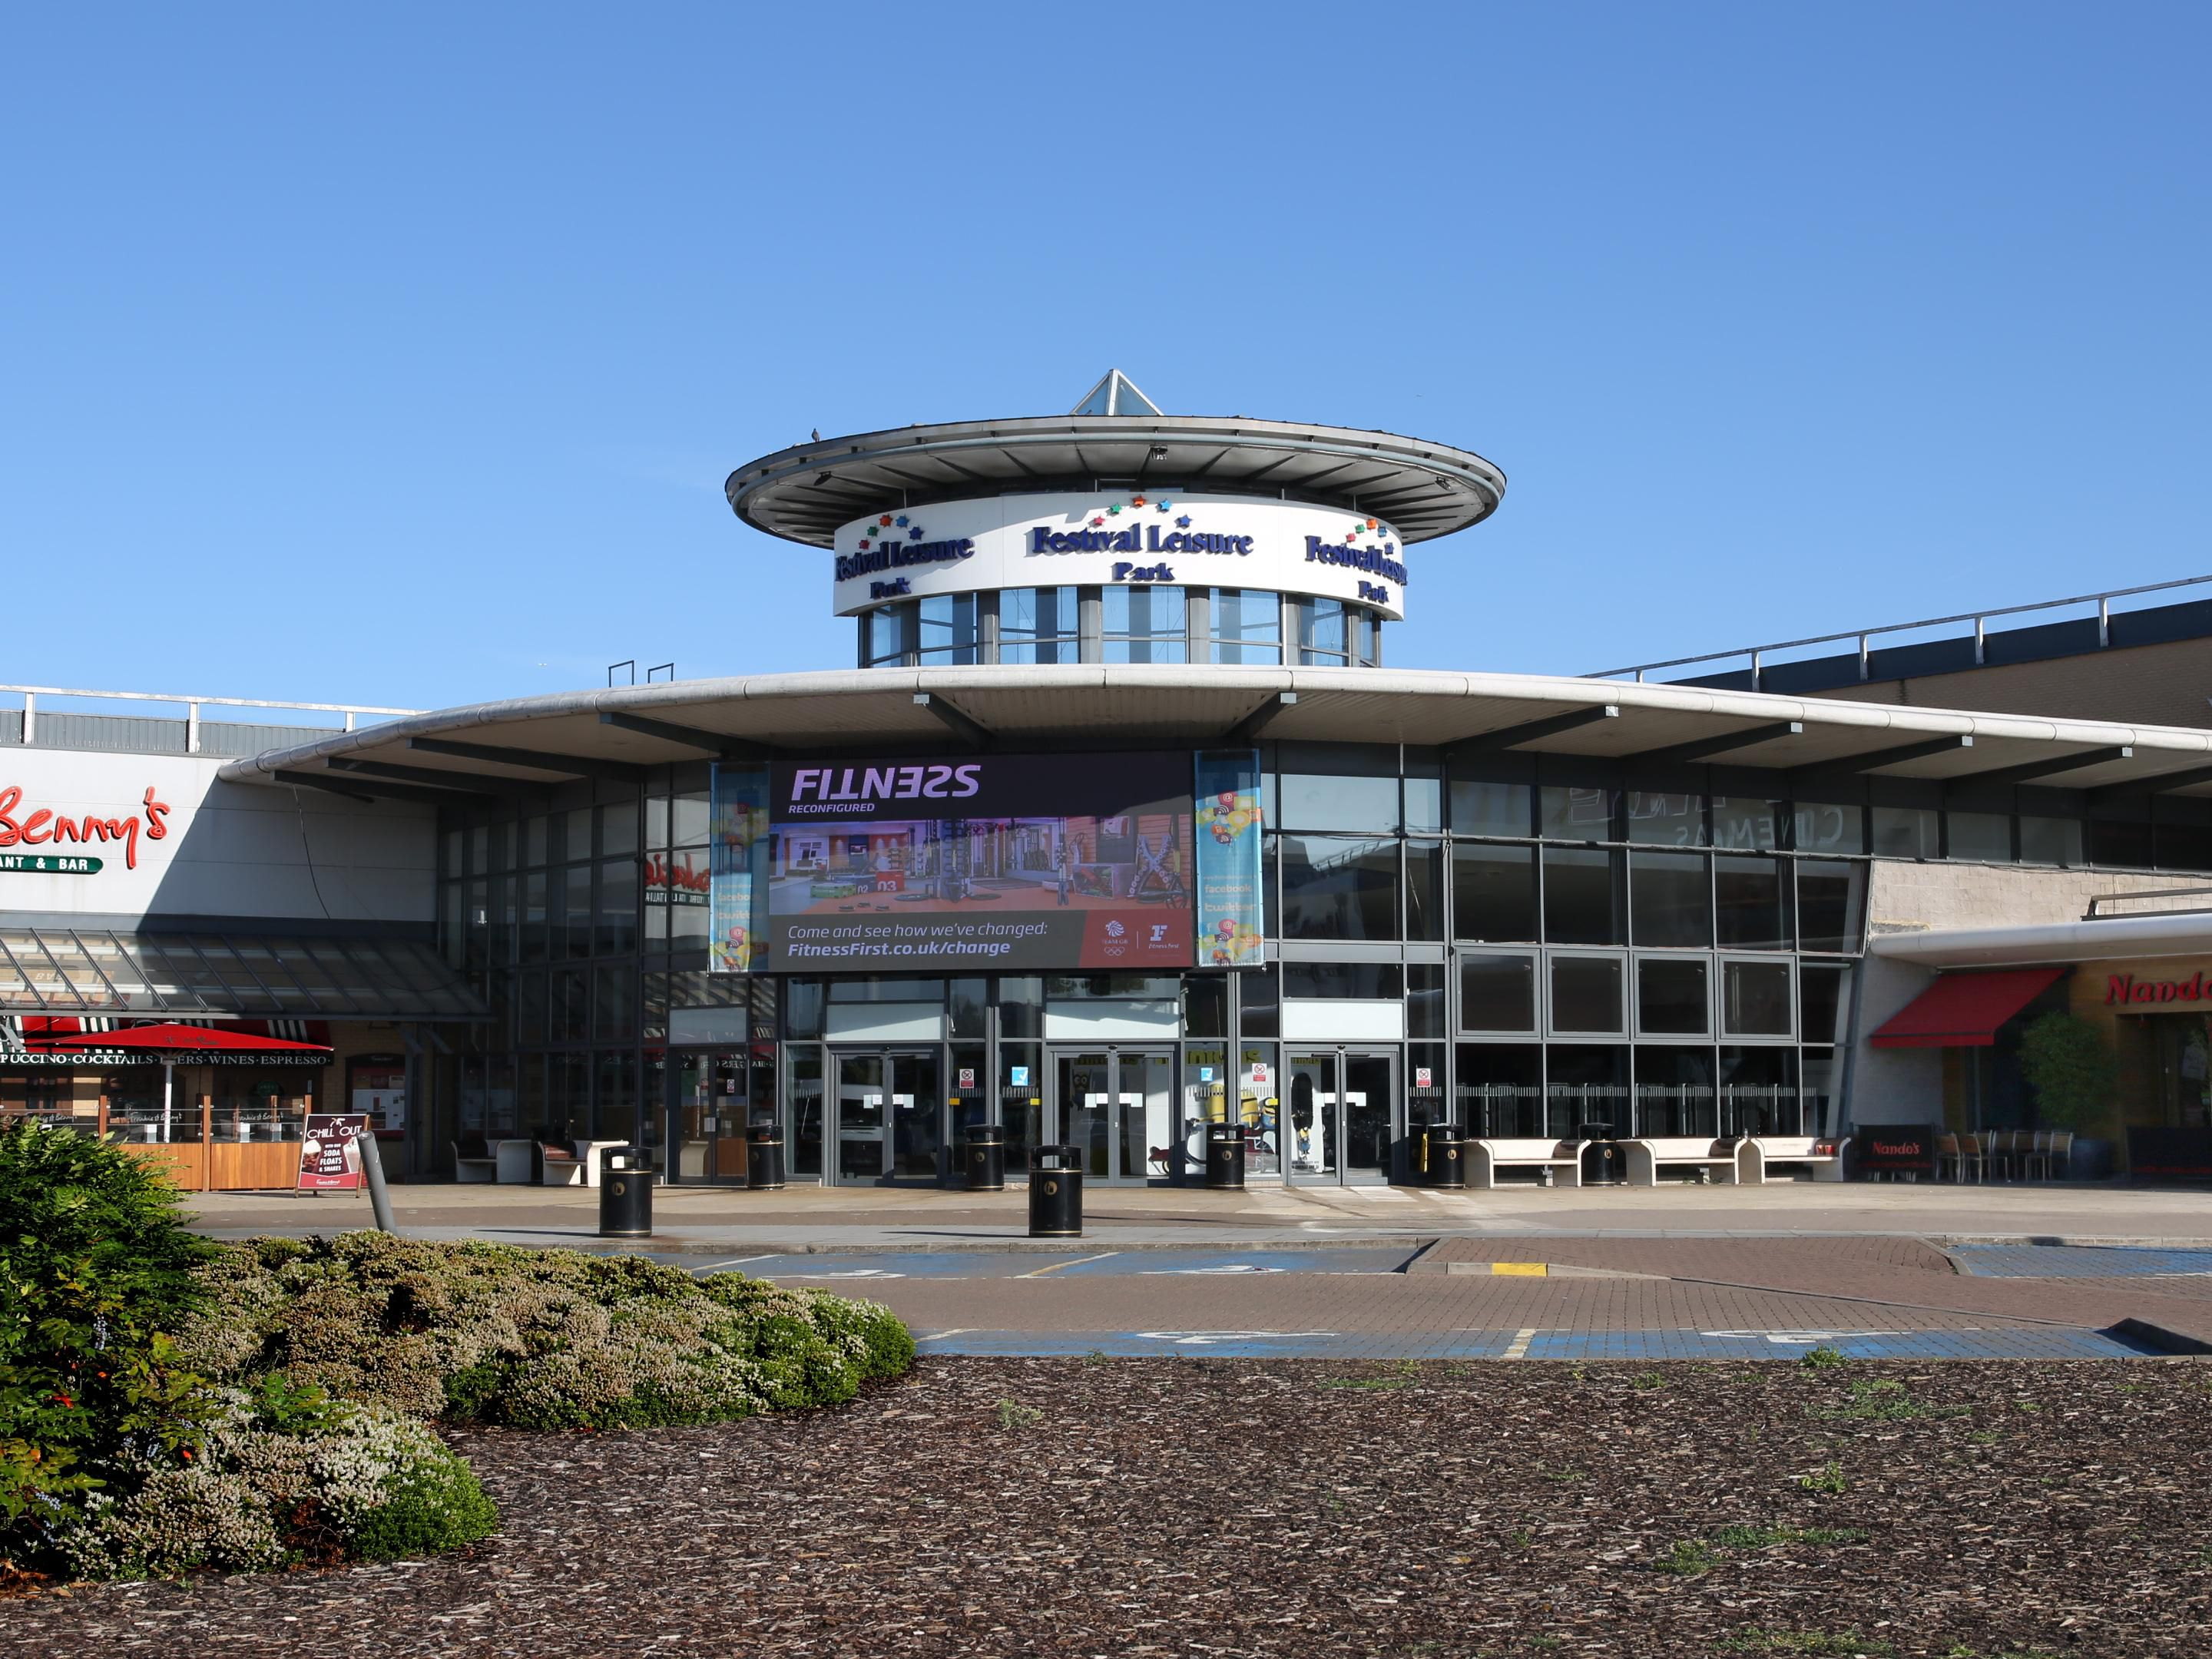 Festival Leisure Park and IMAX Cinema